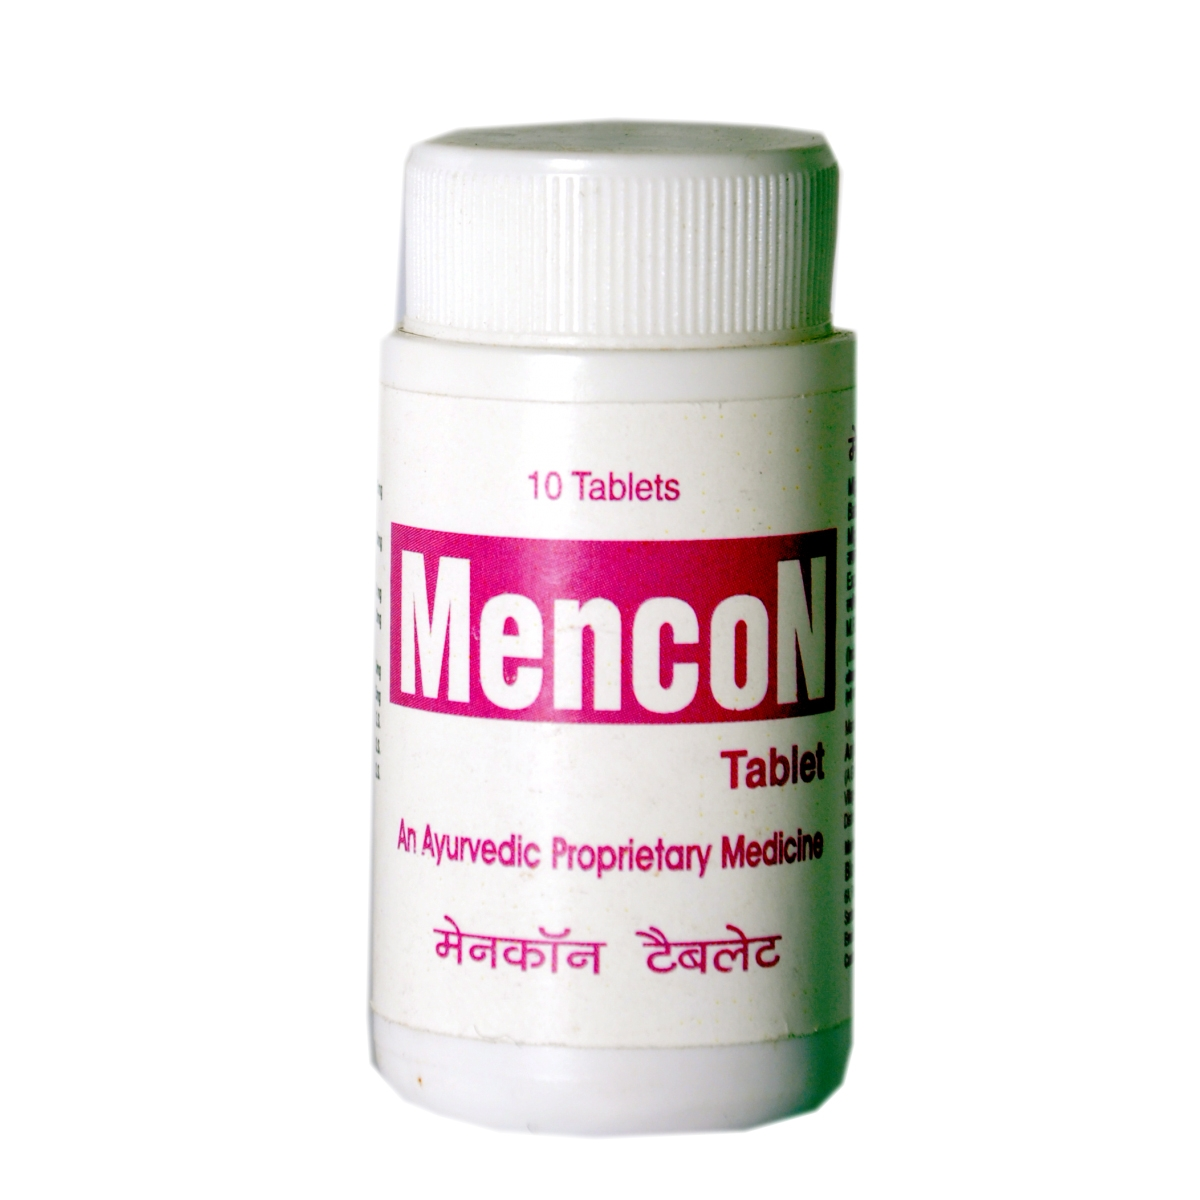 Mencon Tablet In Amethi